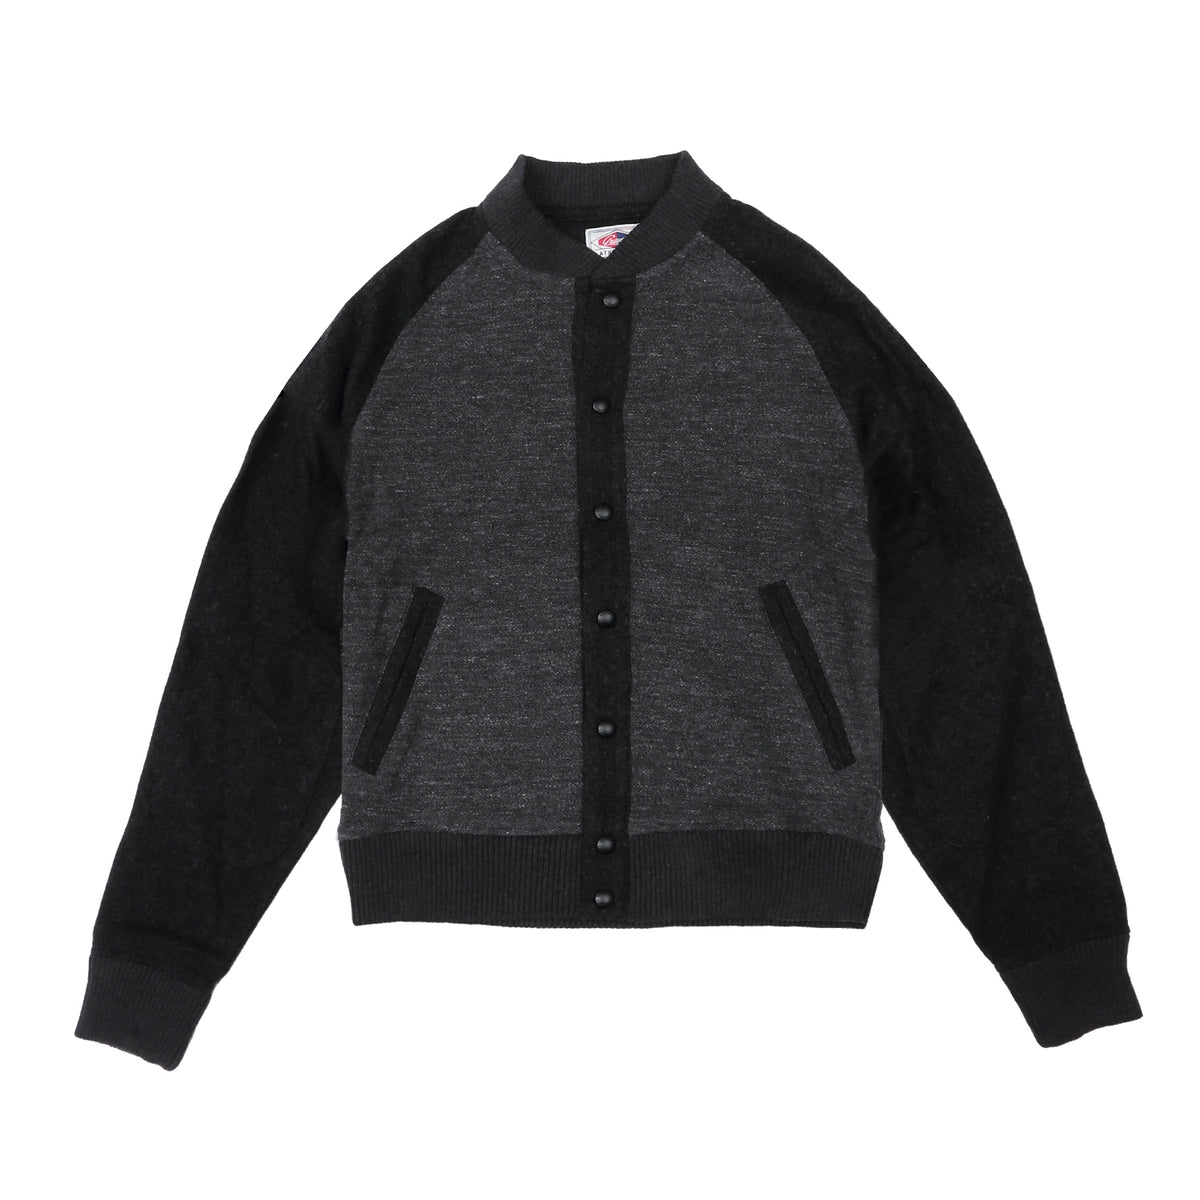 GRAYERS - BOMBER JACKET - CHARCOAL